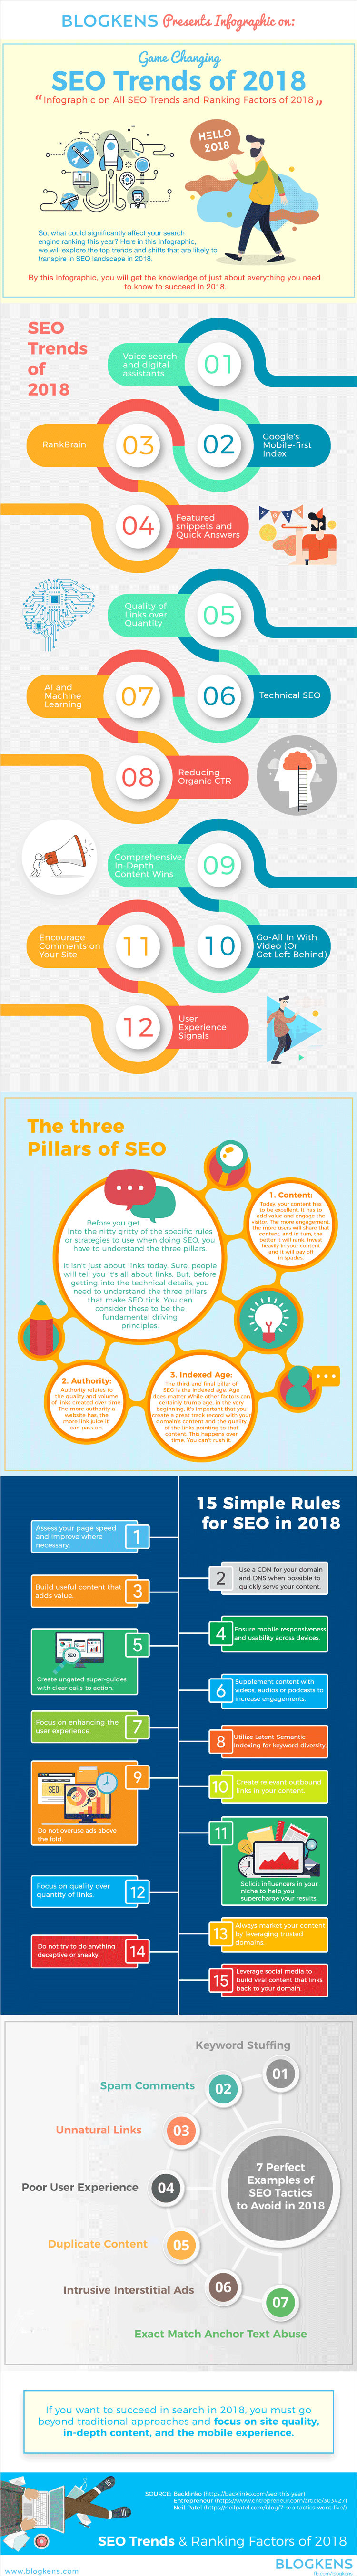 Infographic on SEO Trends and Ranking Factors of 2018